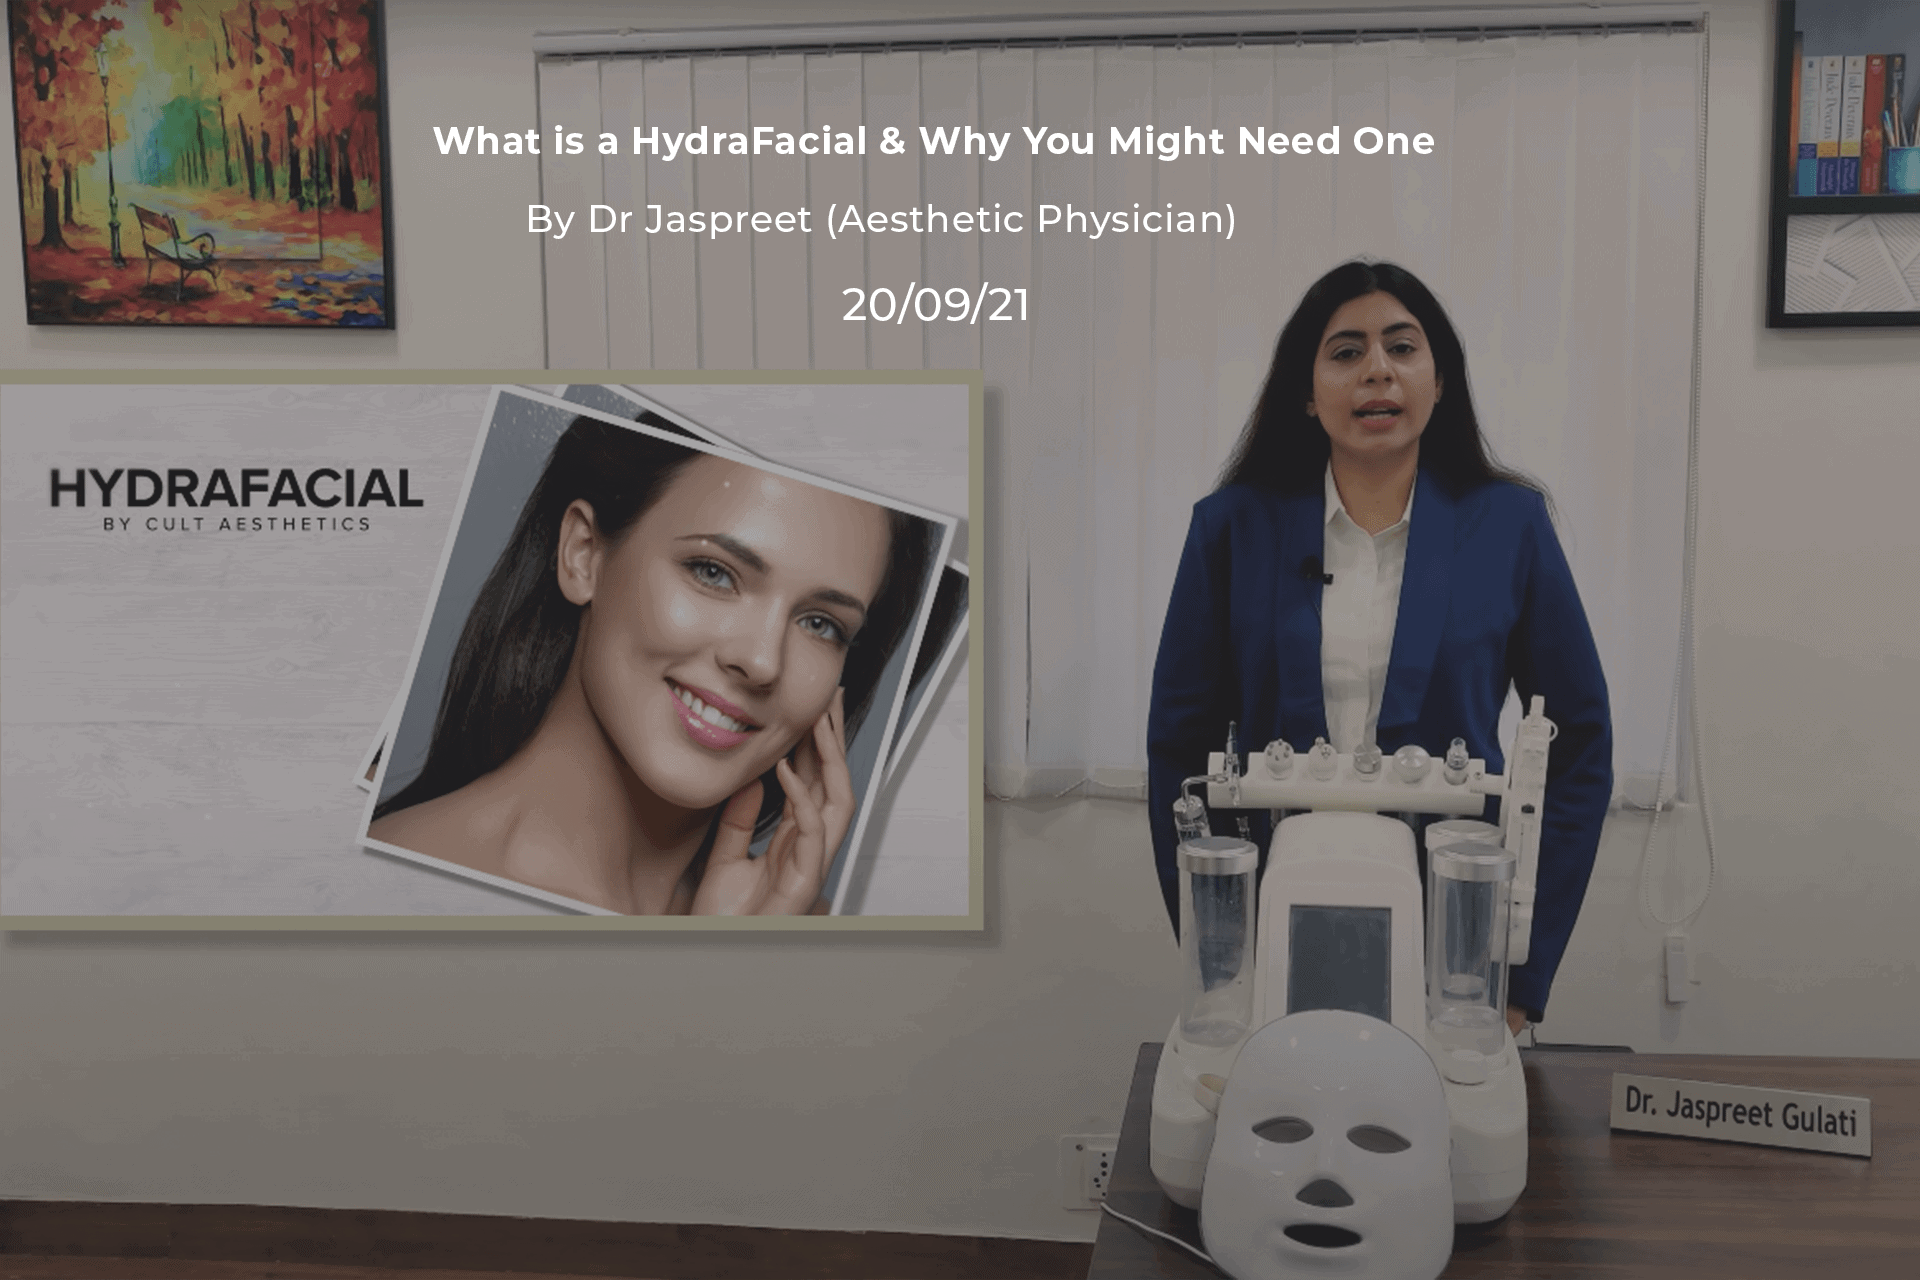 What is a HydraFacial & Why You Might Need One